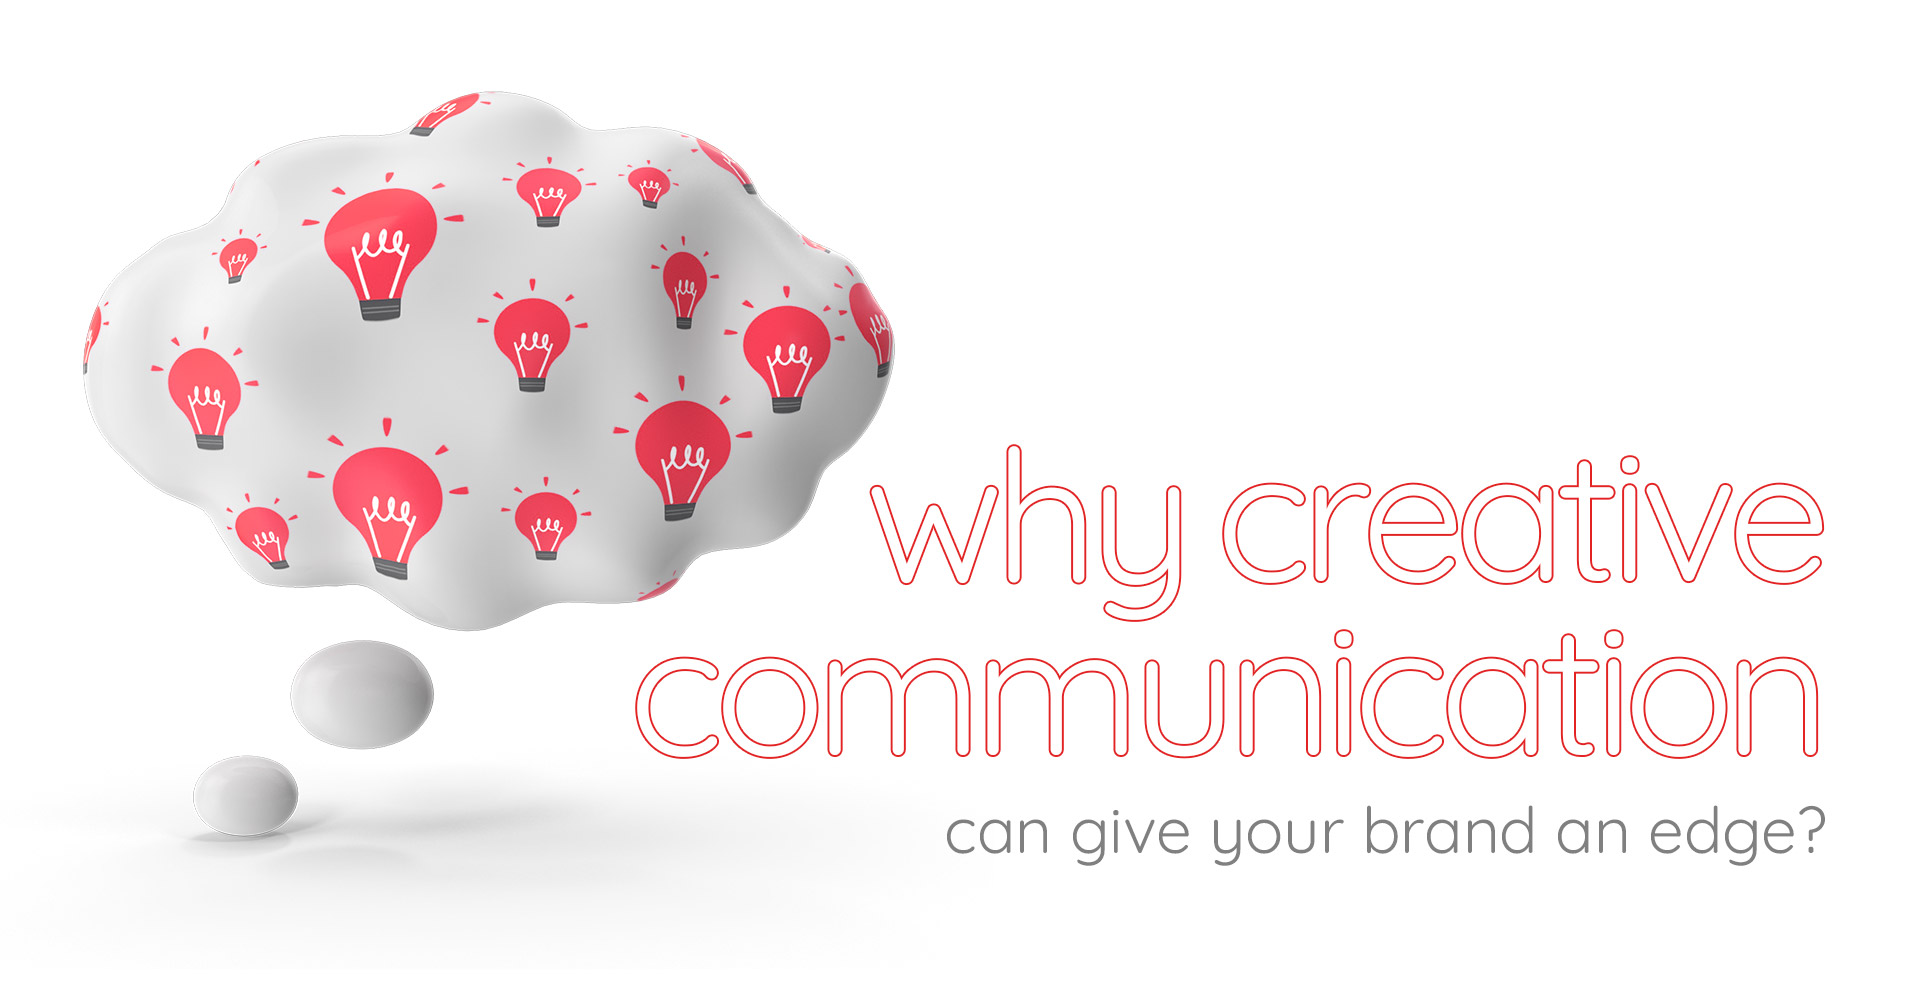 Why creative communication is good for your brand?